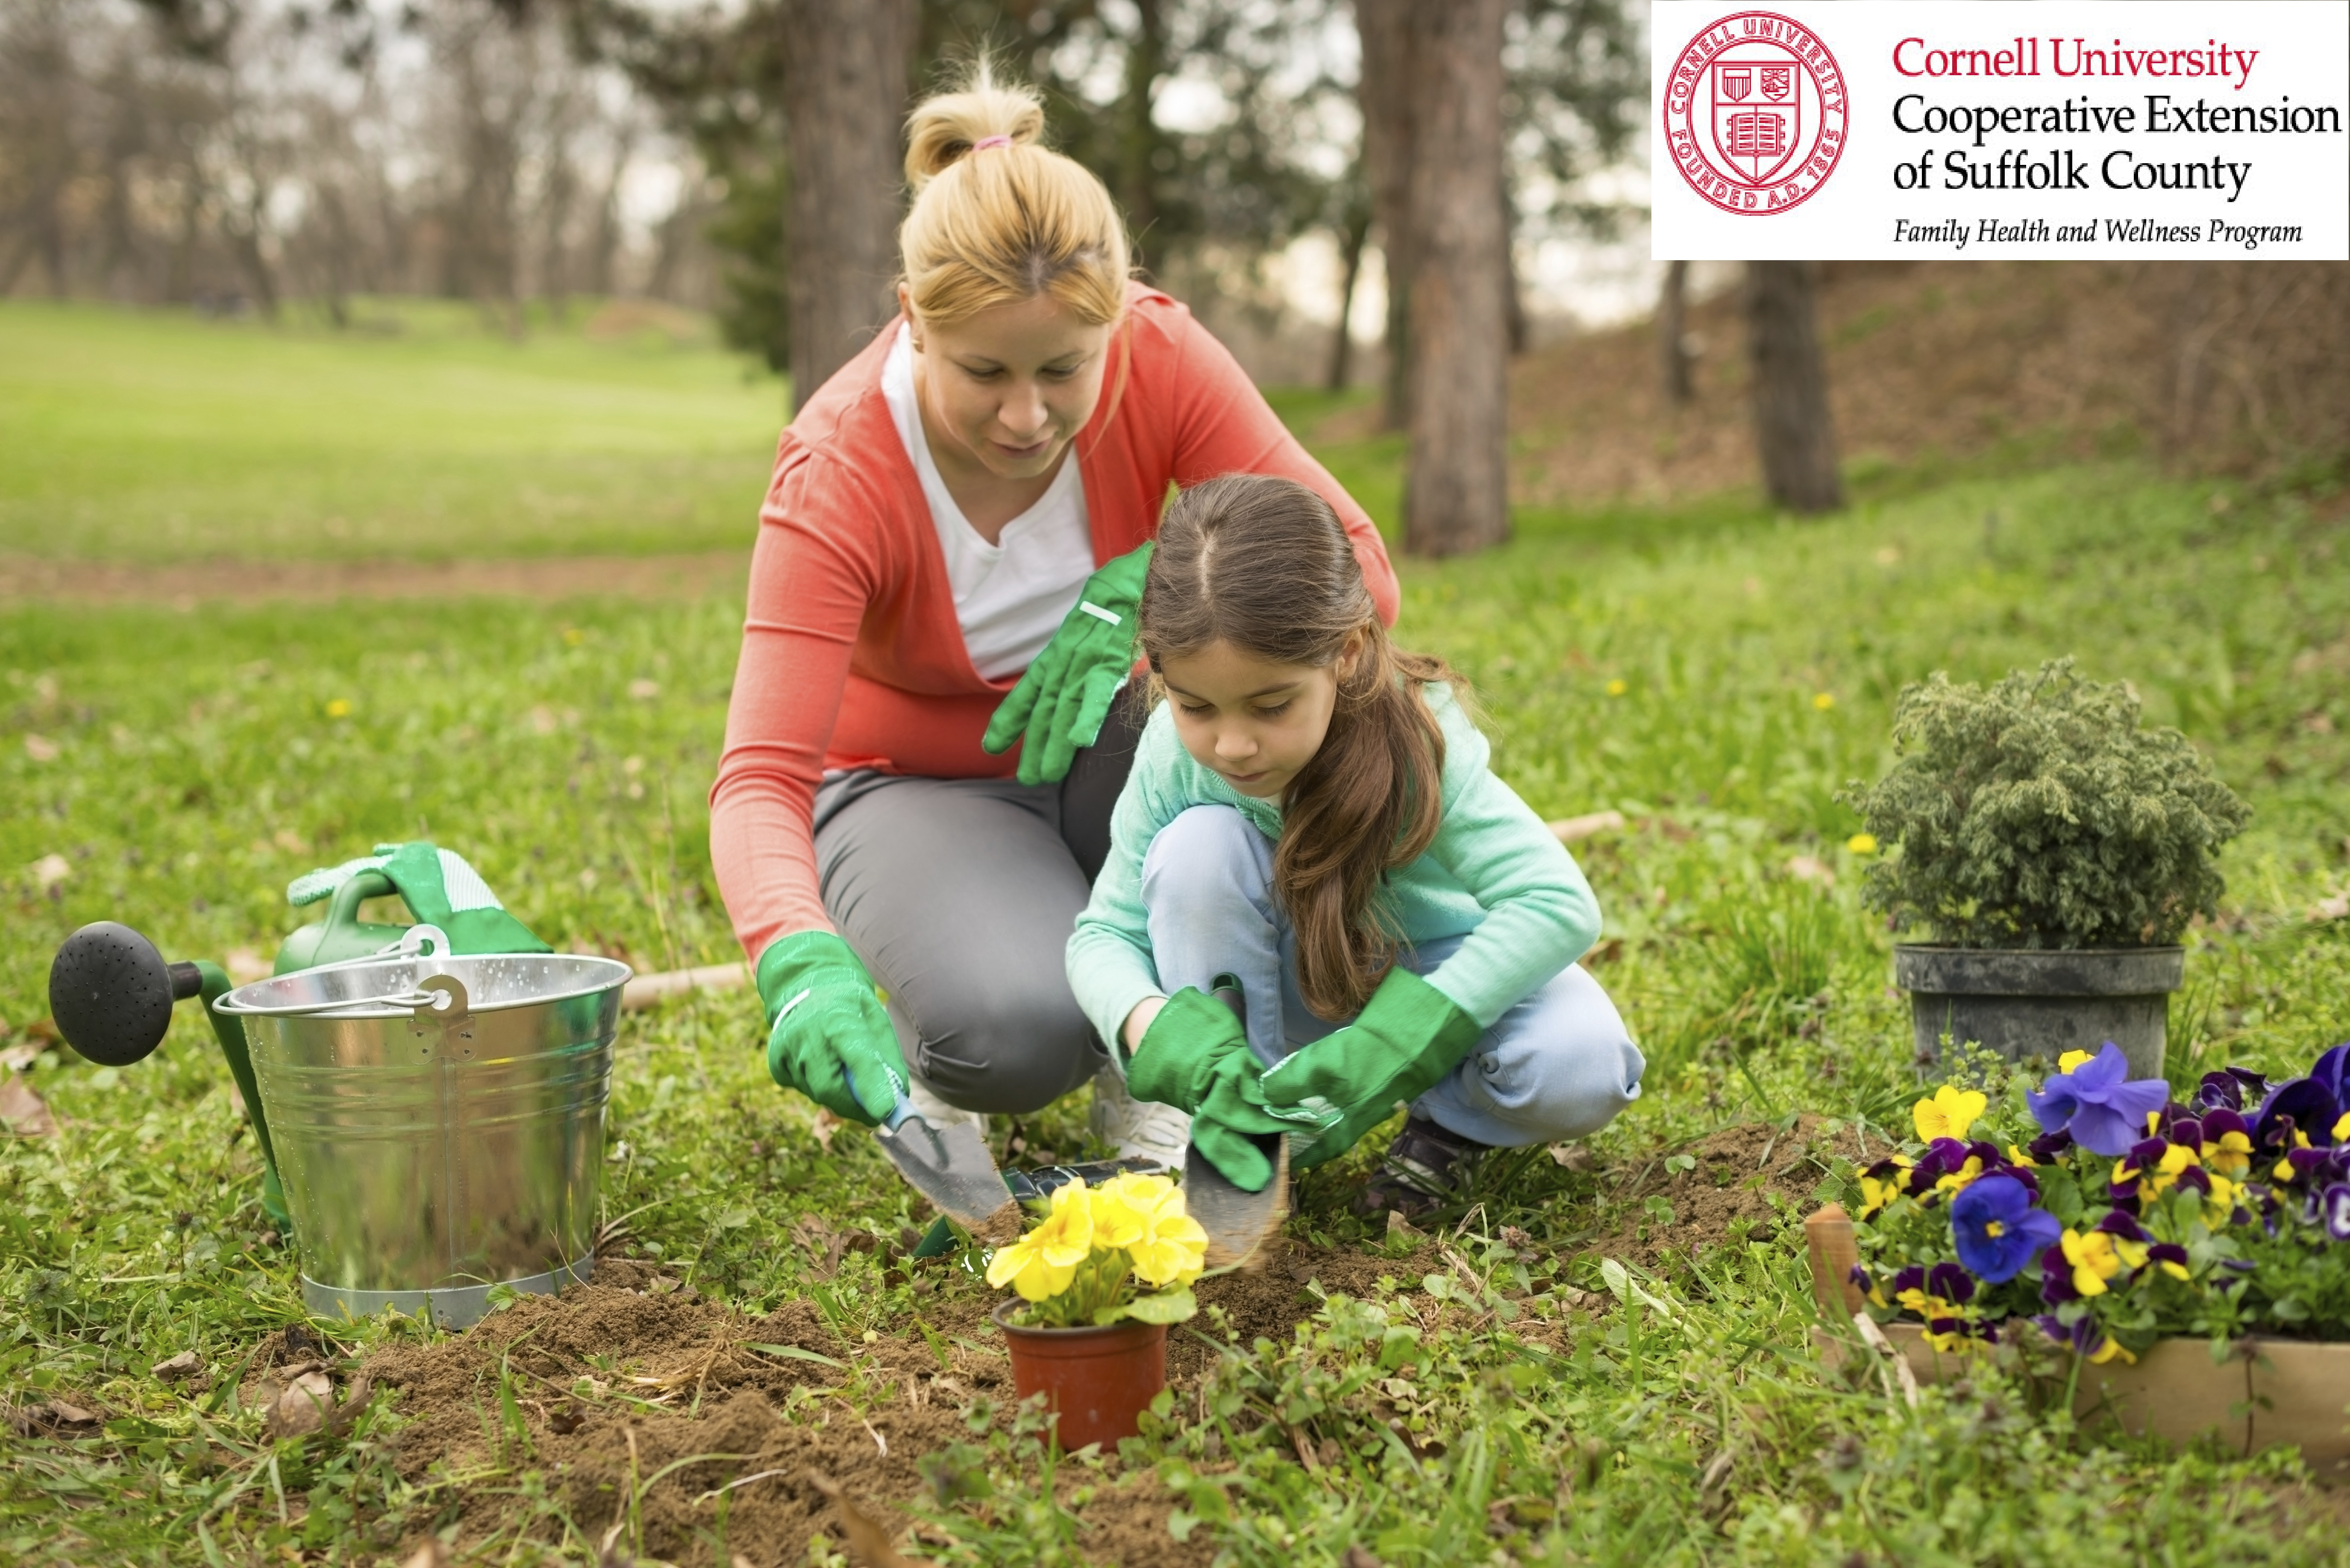 Gardening with Children Reaps Many Benefits CCE Suffolk County